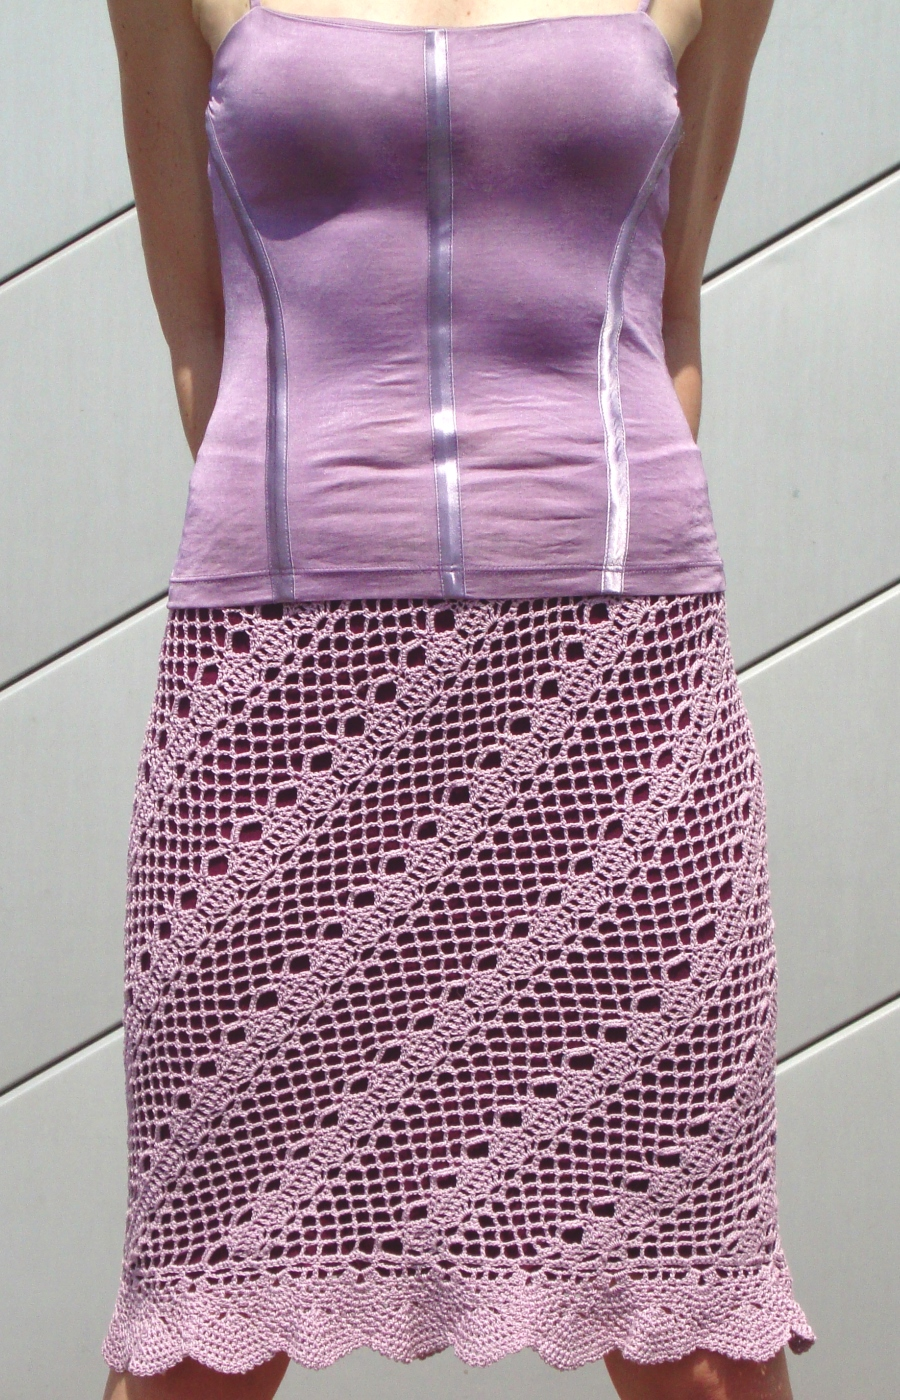 Diagonal beach crochet SKIRT for hot summer – PATTERN